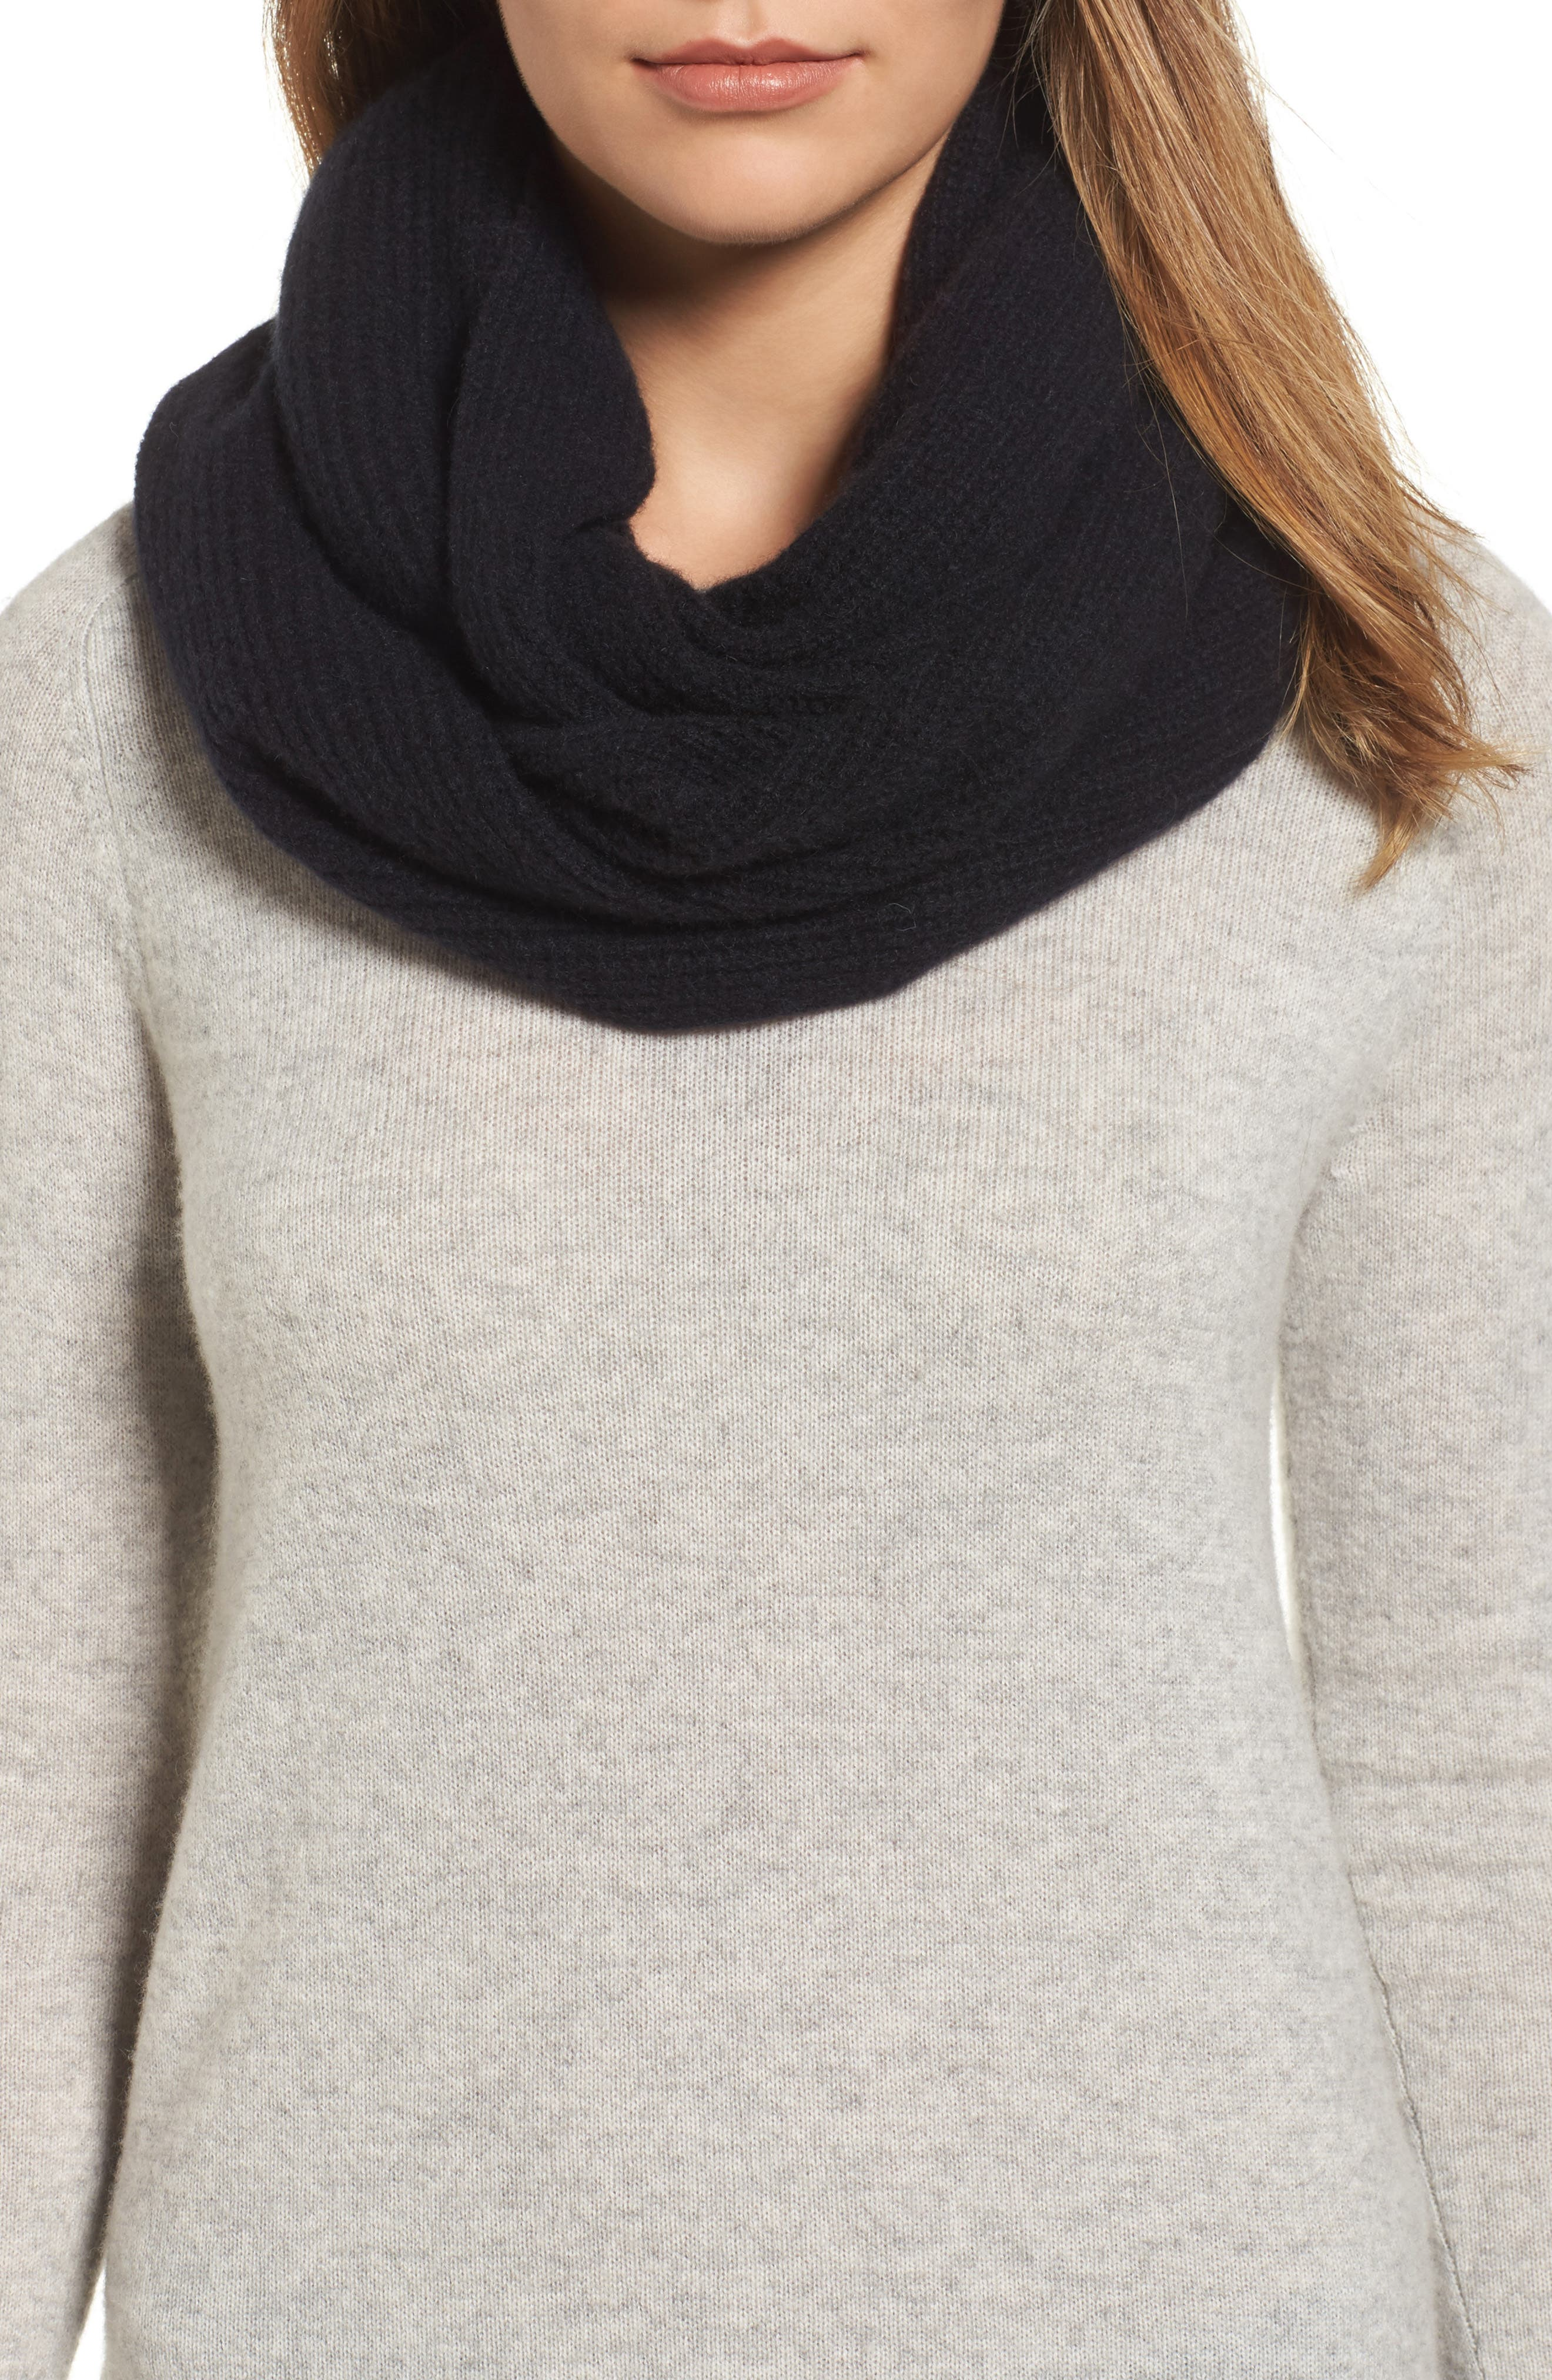 Cashmere Infinity Scarf,                         Main,                         color,